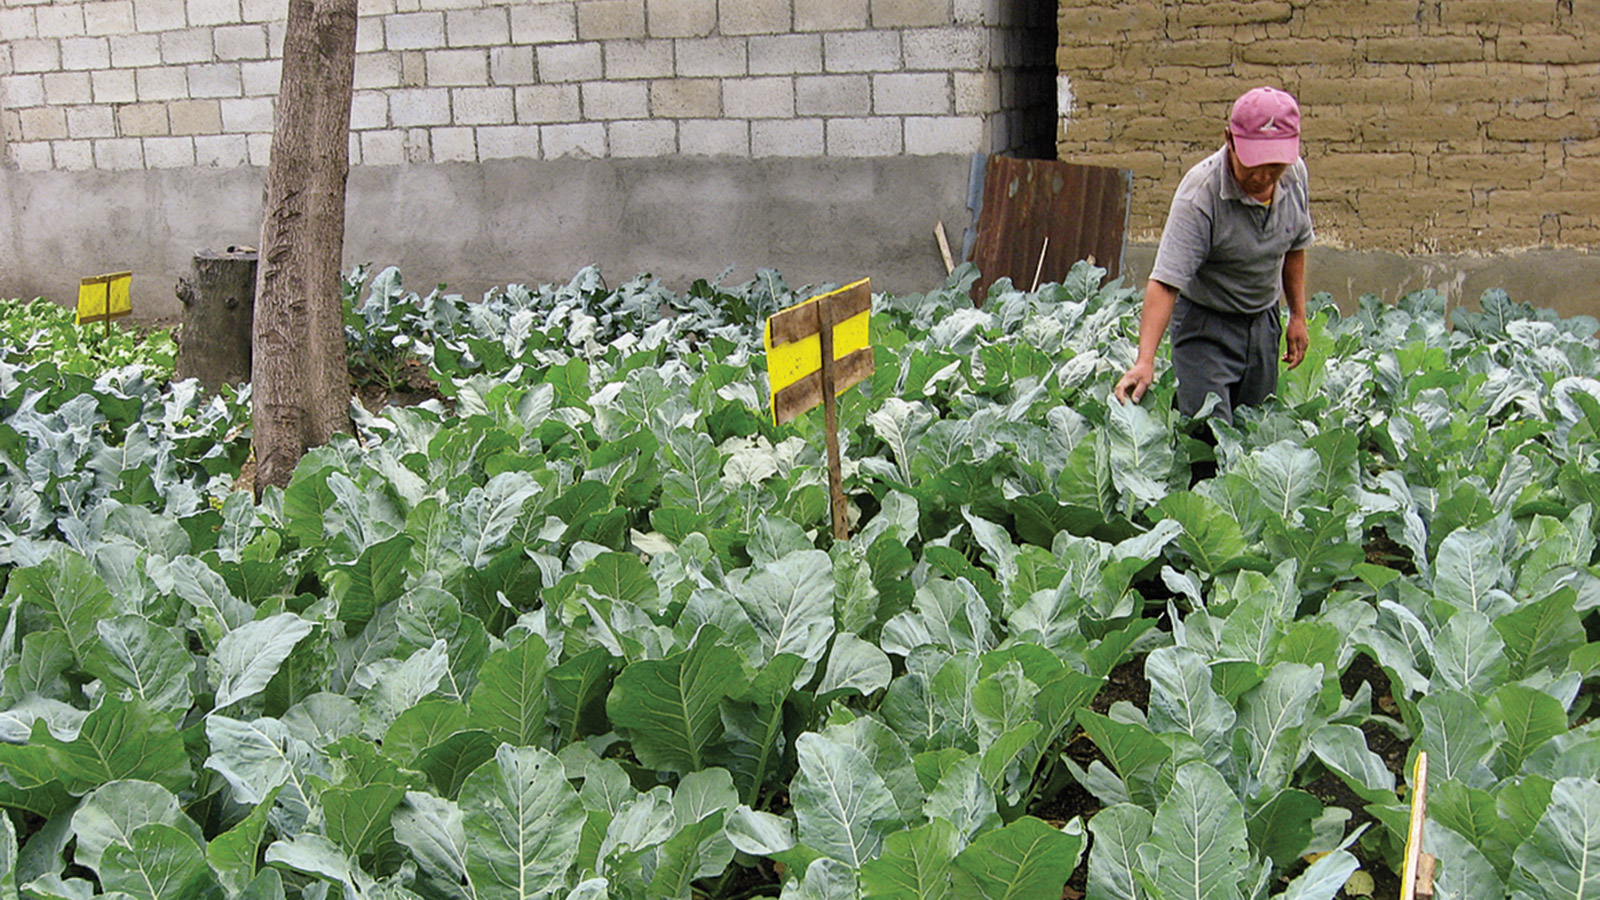 G. Adventures has a program to help farmers in Guatemala convert to organic agriculture